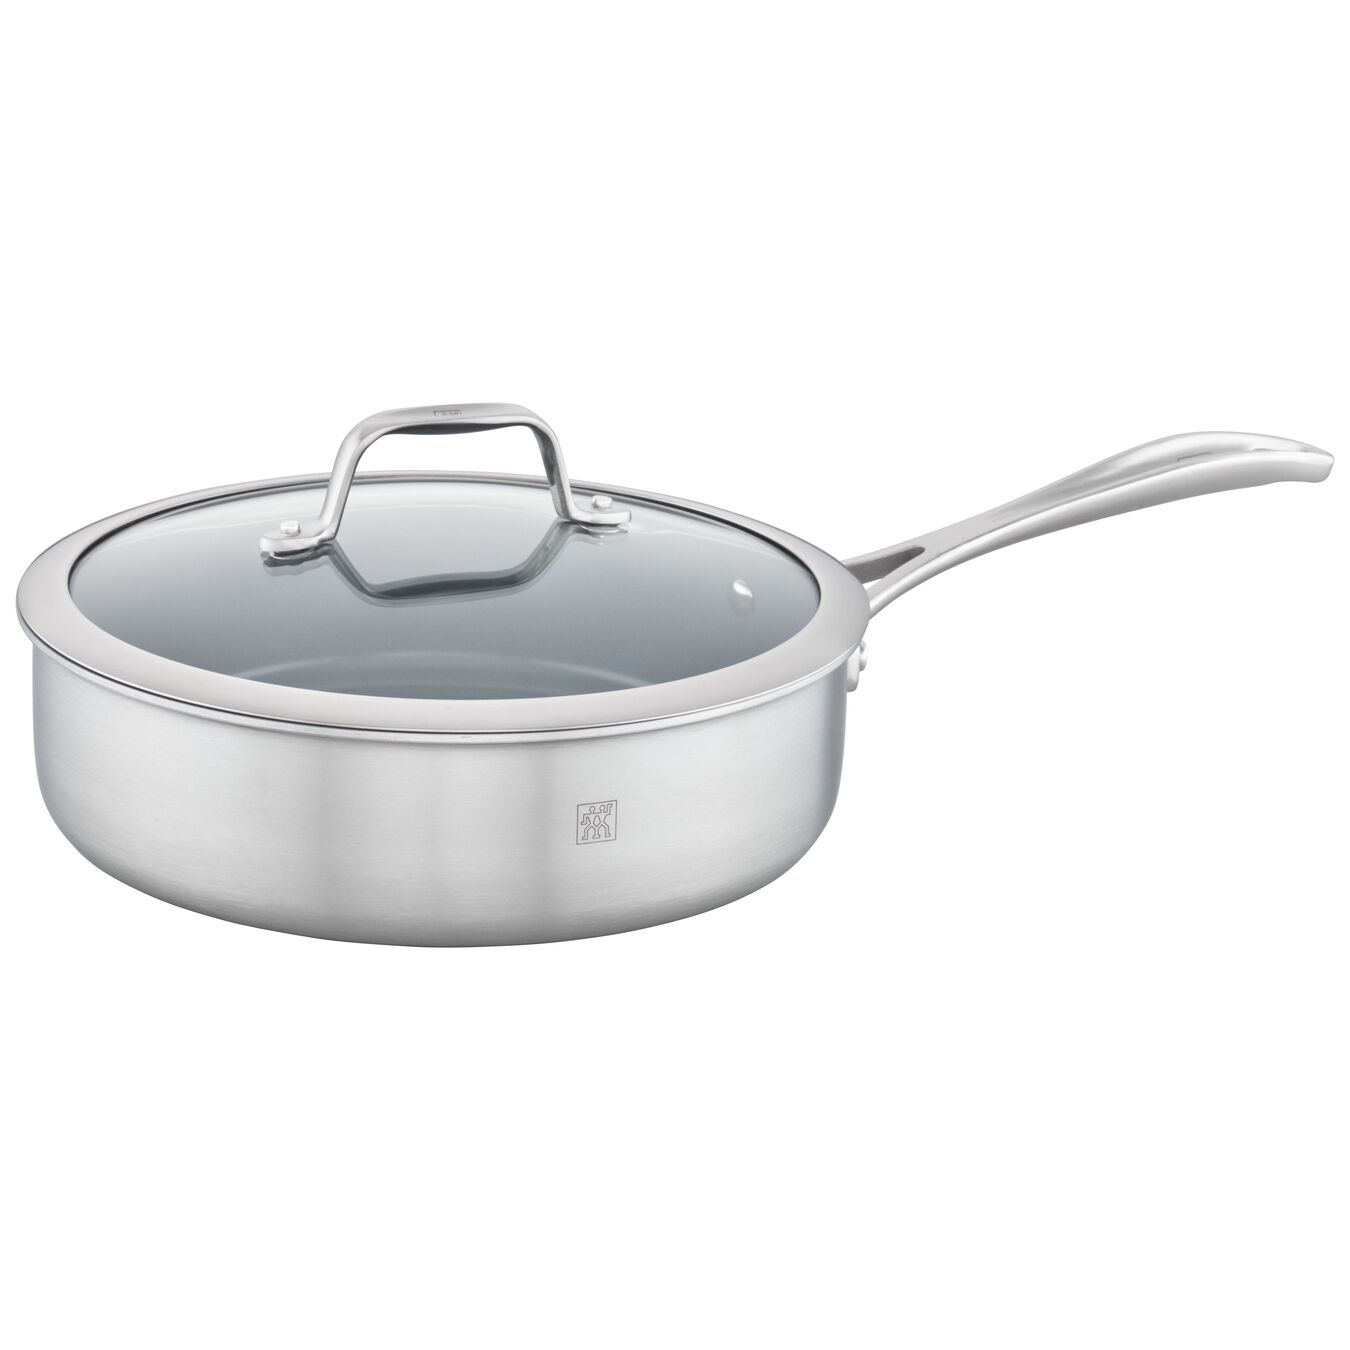 3-ply 3-qt Stainless Steel Ceramic Nonstick Saute Pan,,large 4